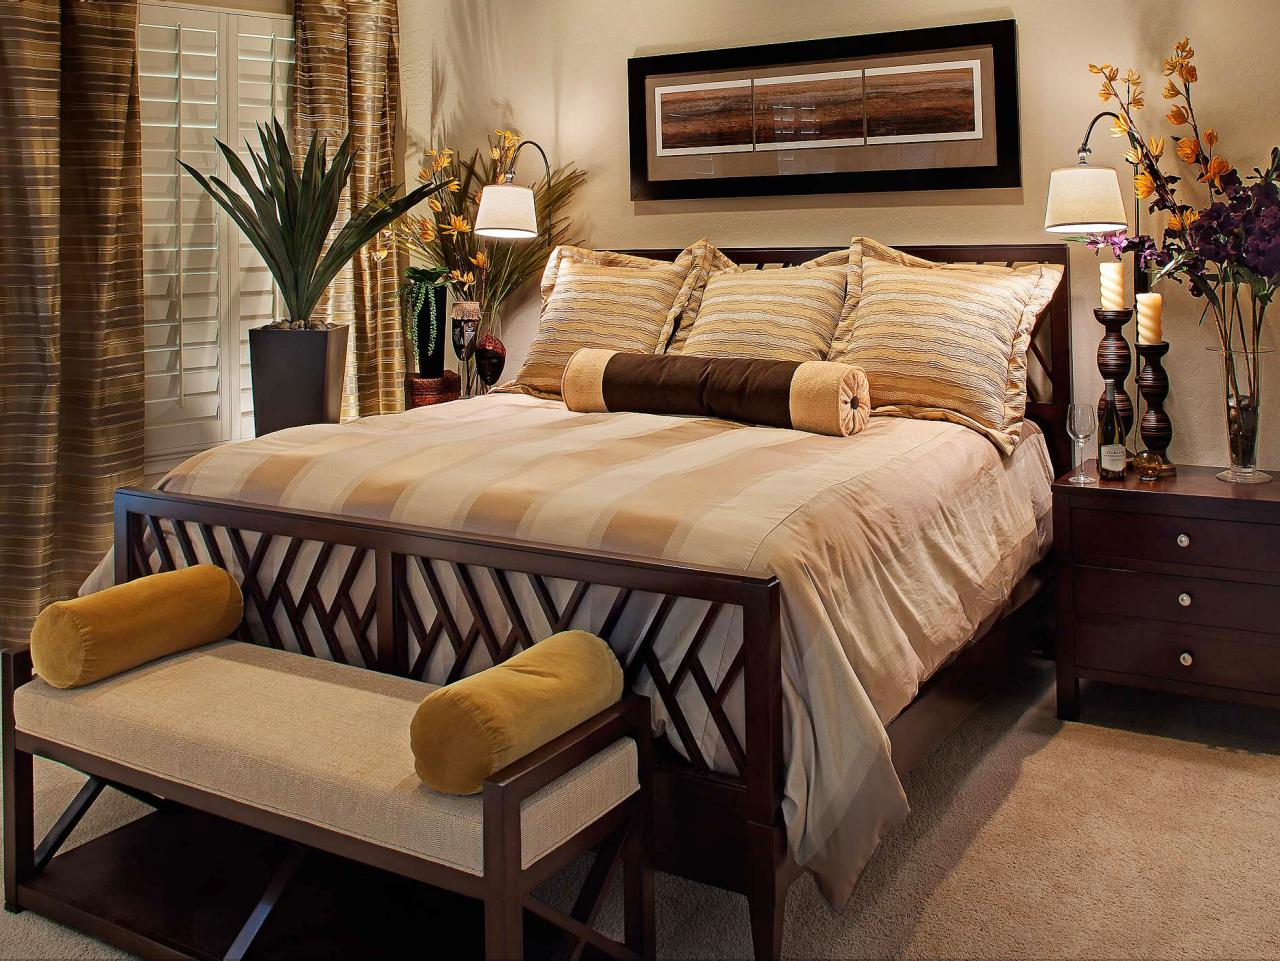 Photo page hgtv - Master bedroom decorating tips ...